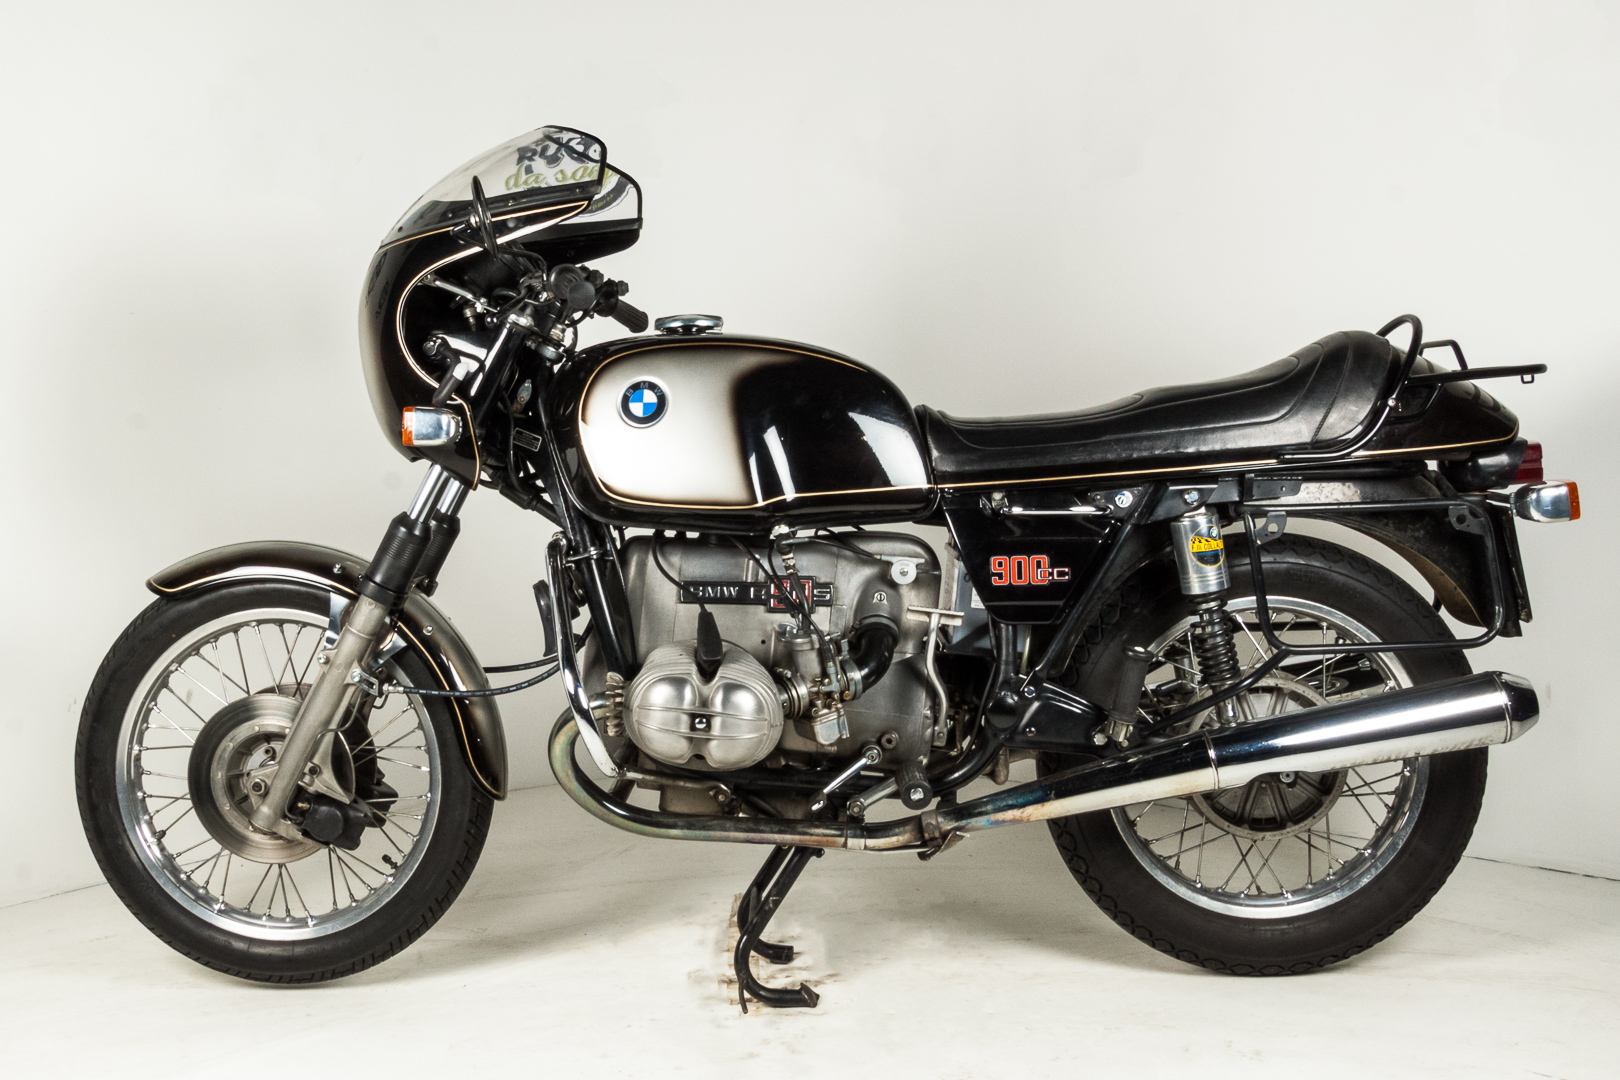 1974 bmw r90s moto d 39 epoca ruote da sogno. Black Bedroom Furniture Sets. Home Design Ideas